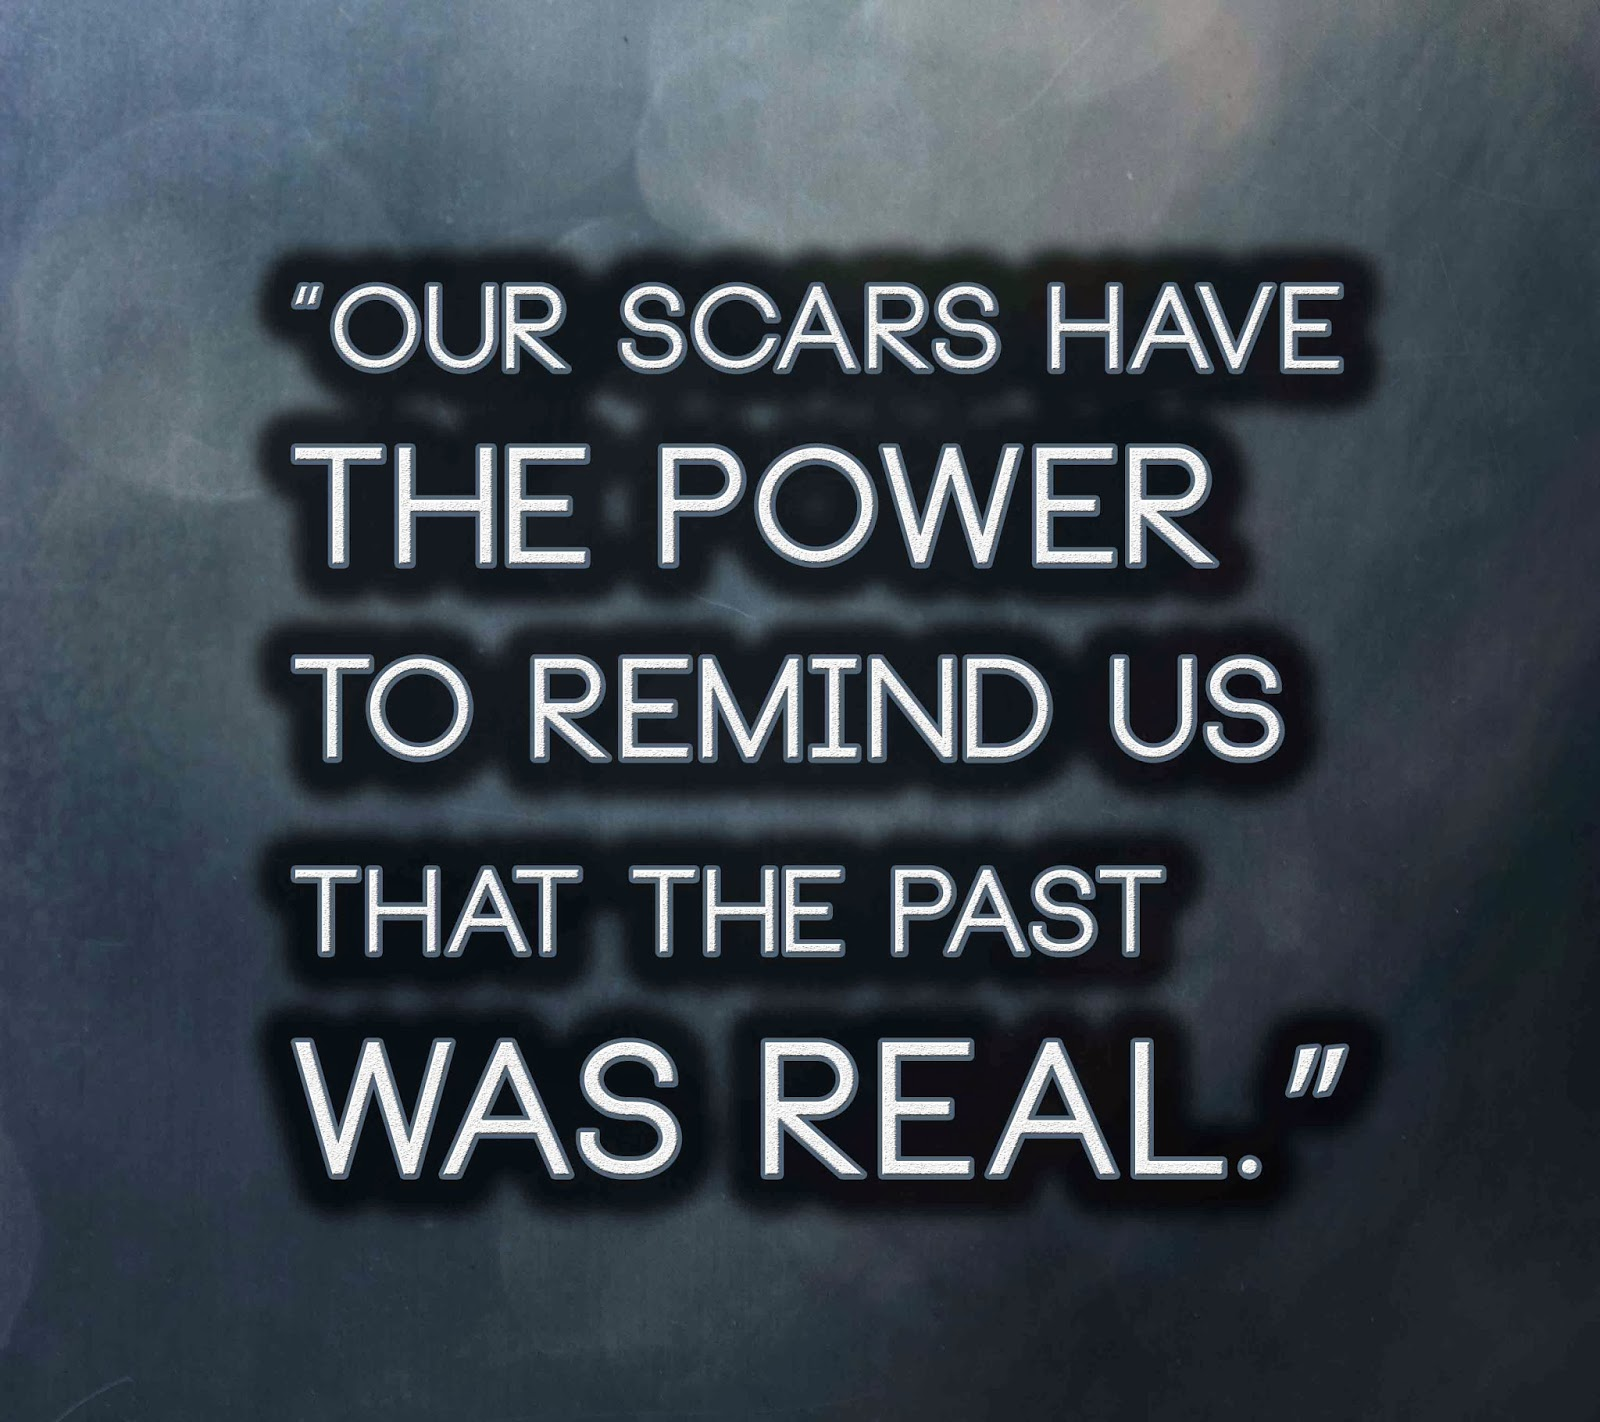 Our scars have the power to remind us that the past was real anonymous art of revolution - Images remind us s ...